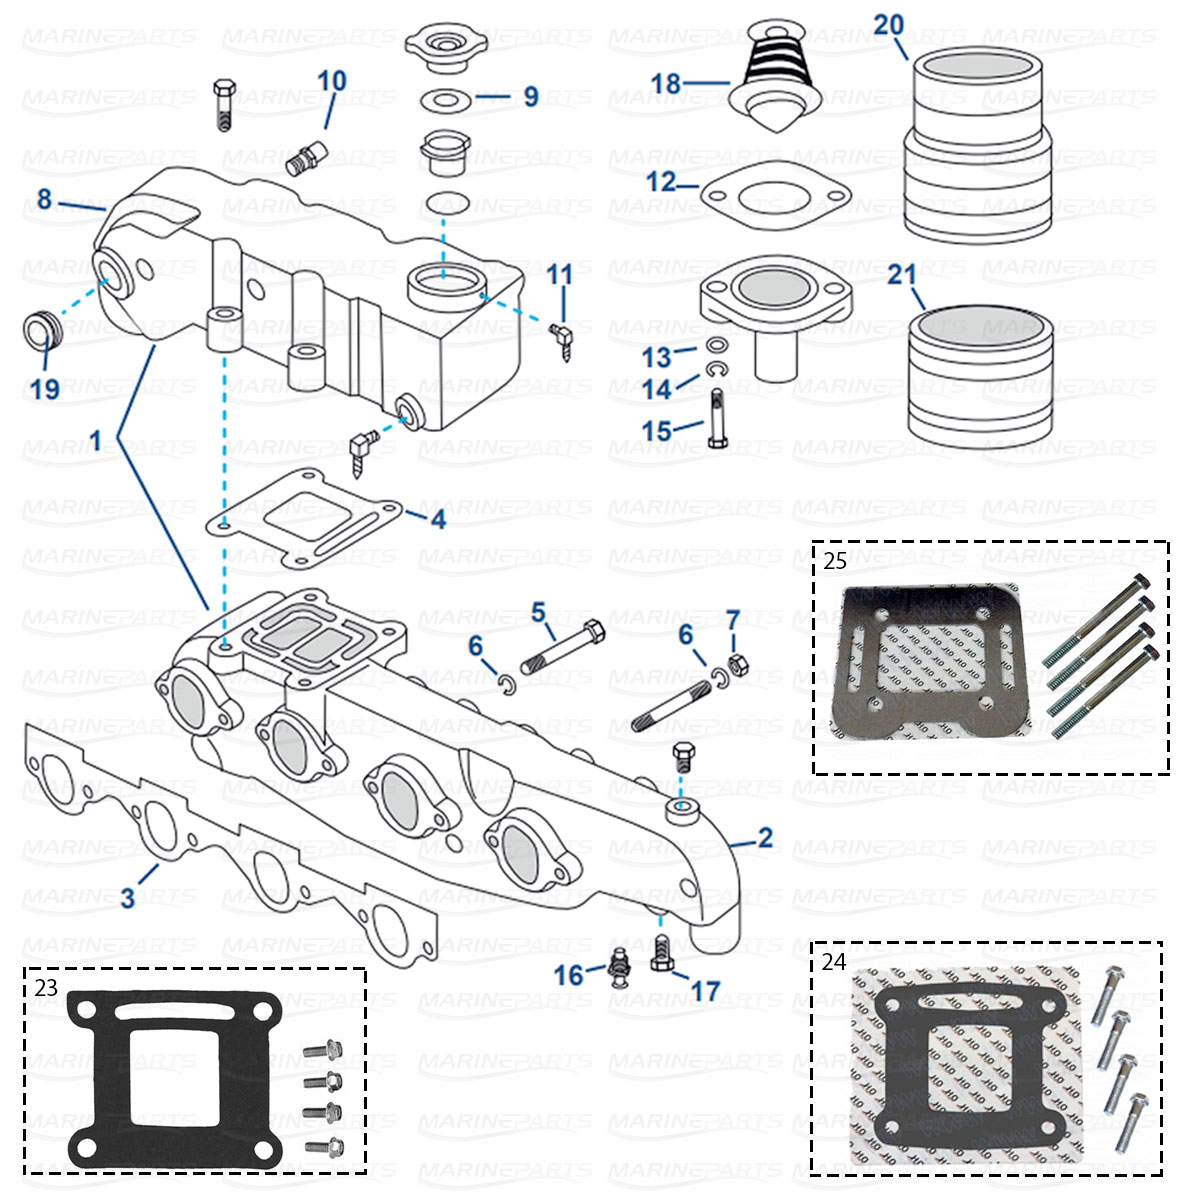 Spare parts » Inboards » MerCruiser » Engine parts